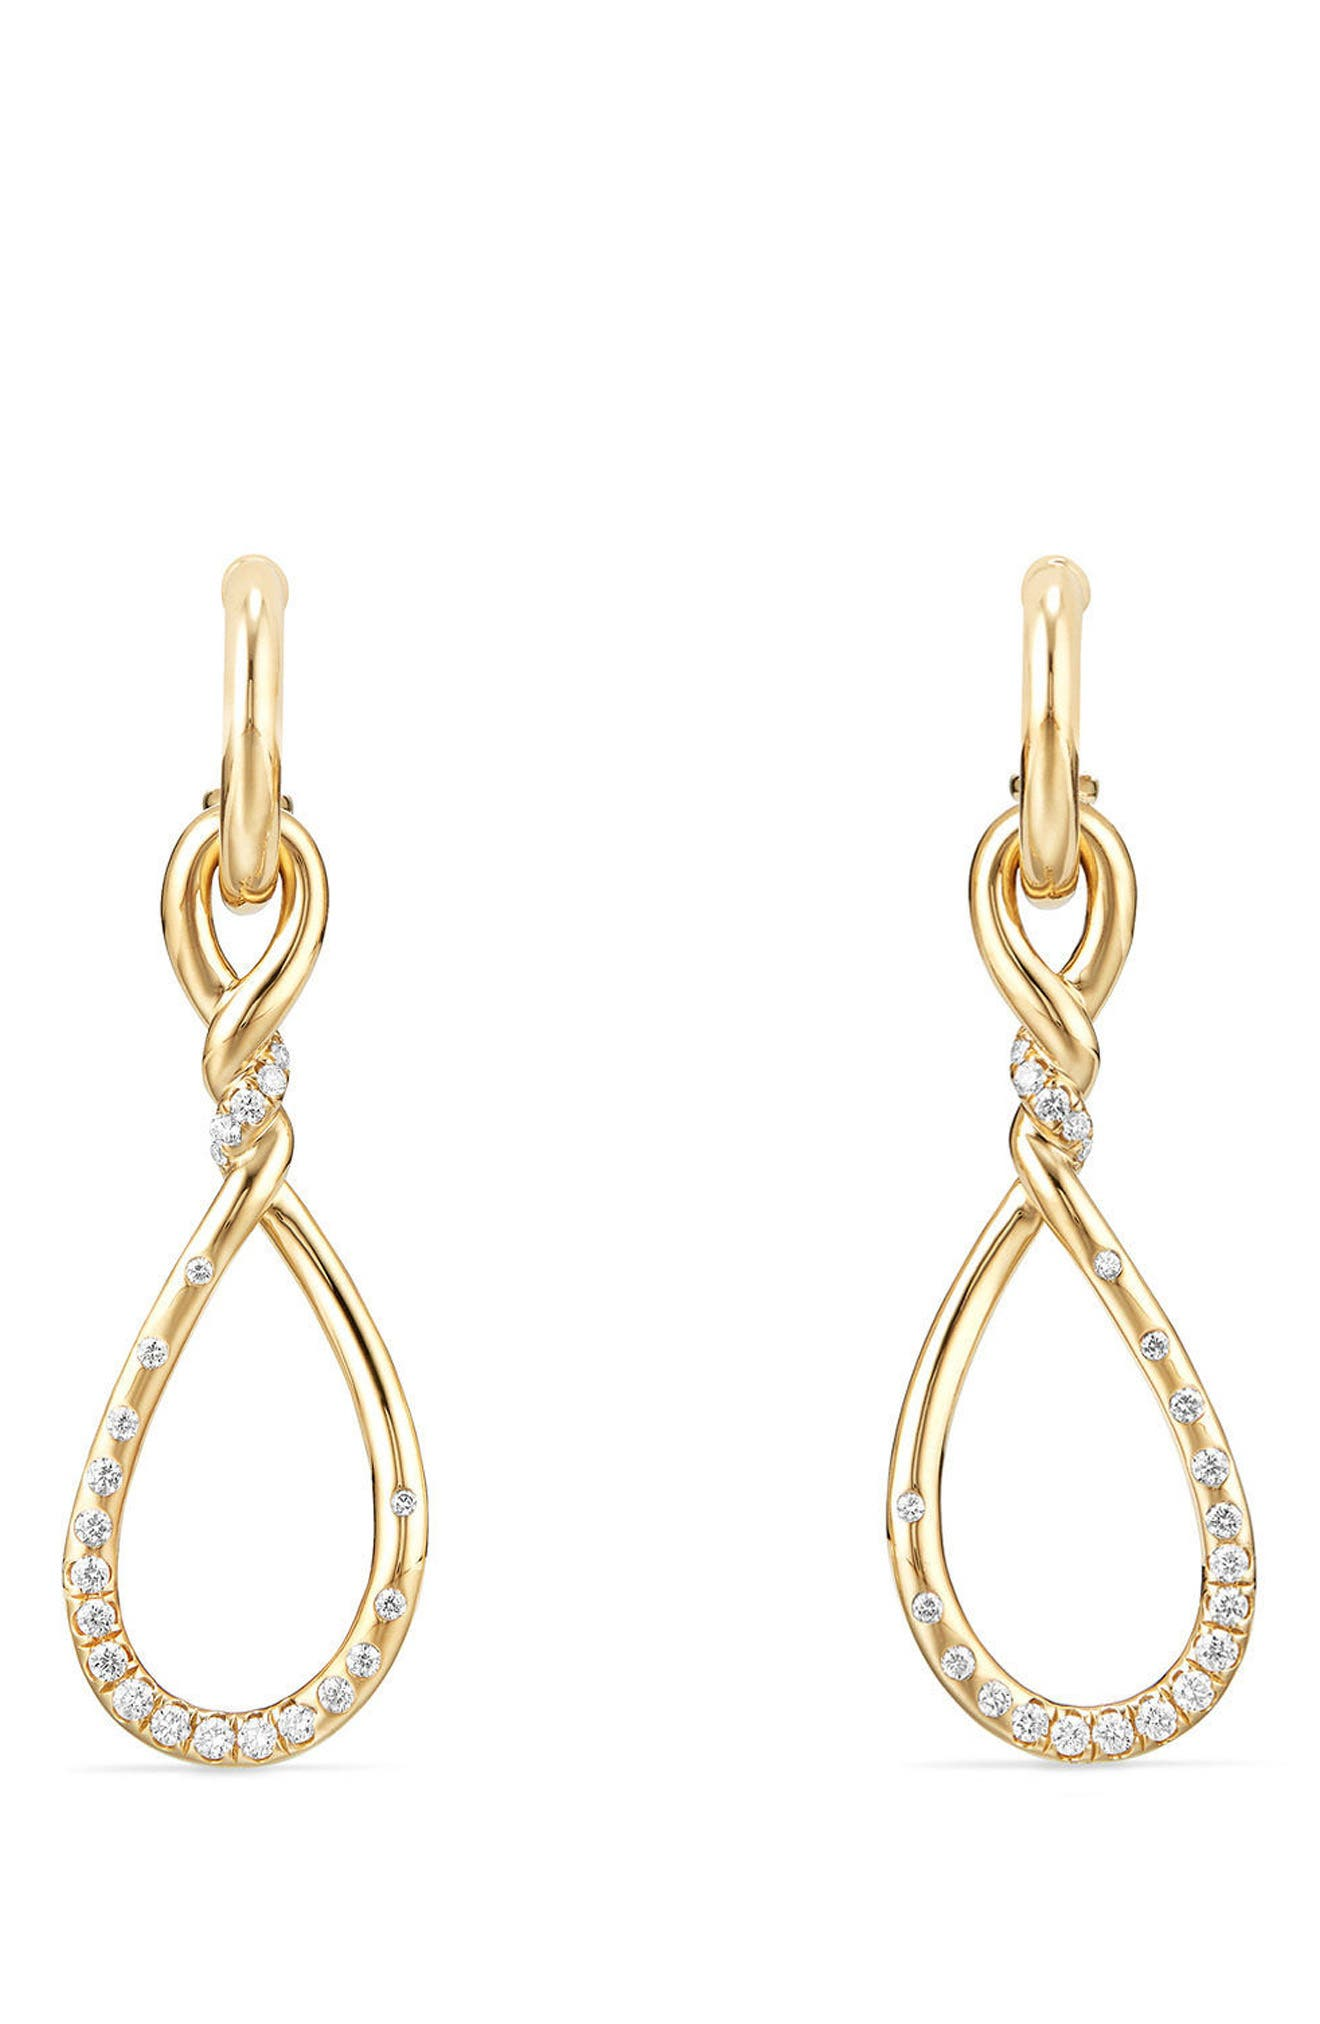 Continuance Medium Drop Earrings with Diamonds in 18K Gold,                             Main thumbnail 1, color,                             Yellow Gold